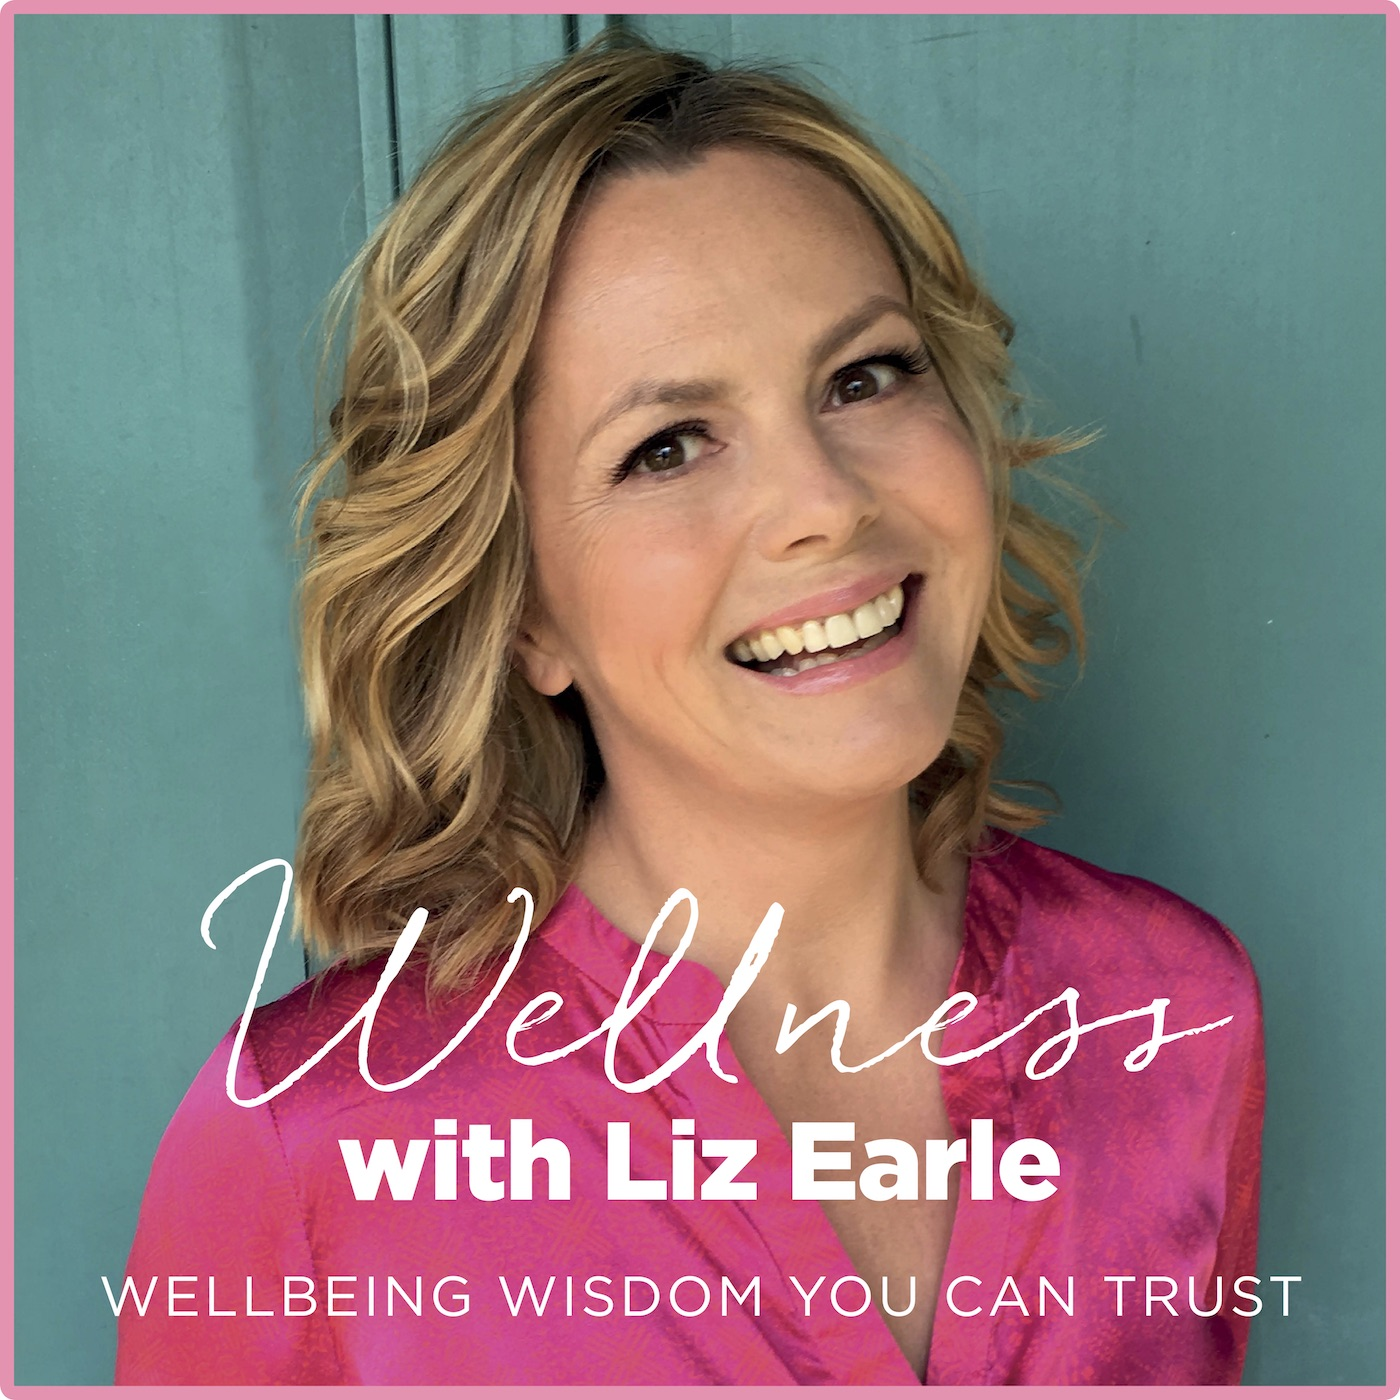 Wellness-with-Liz-Earle-Square